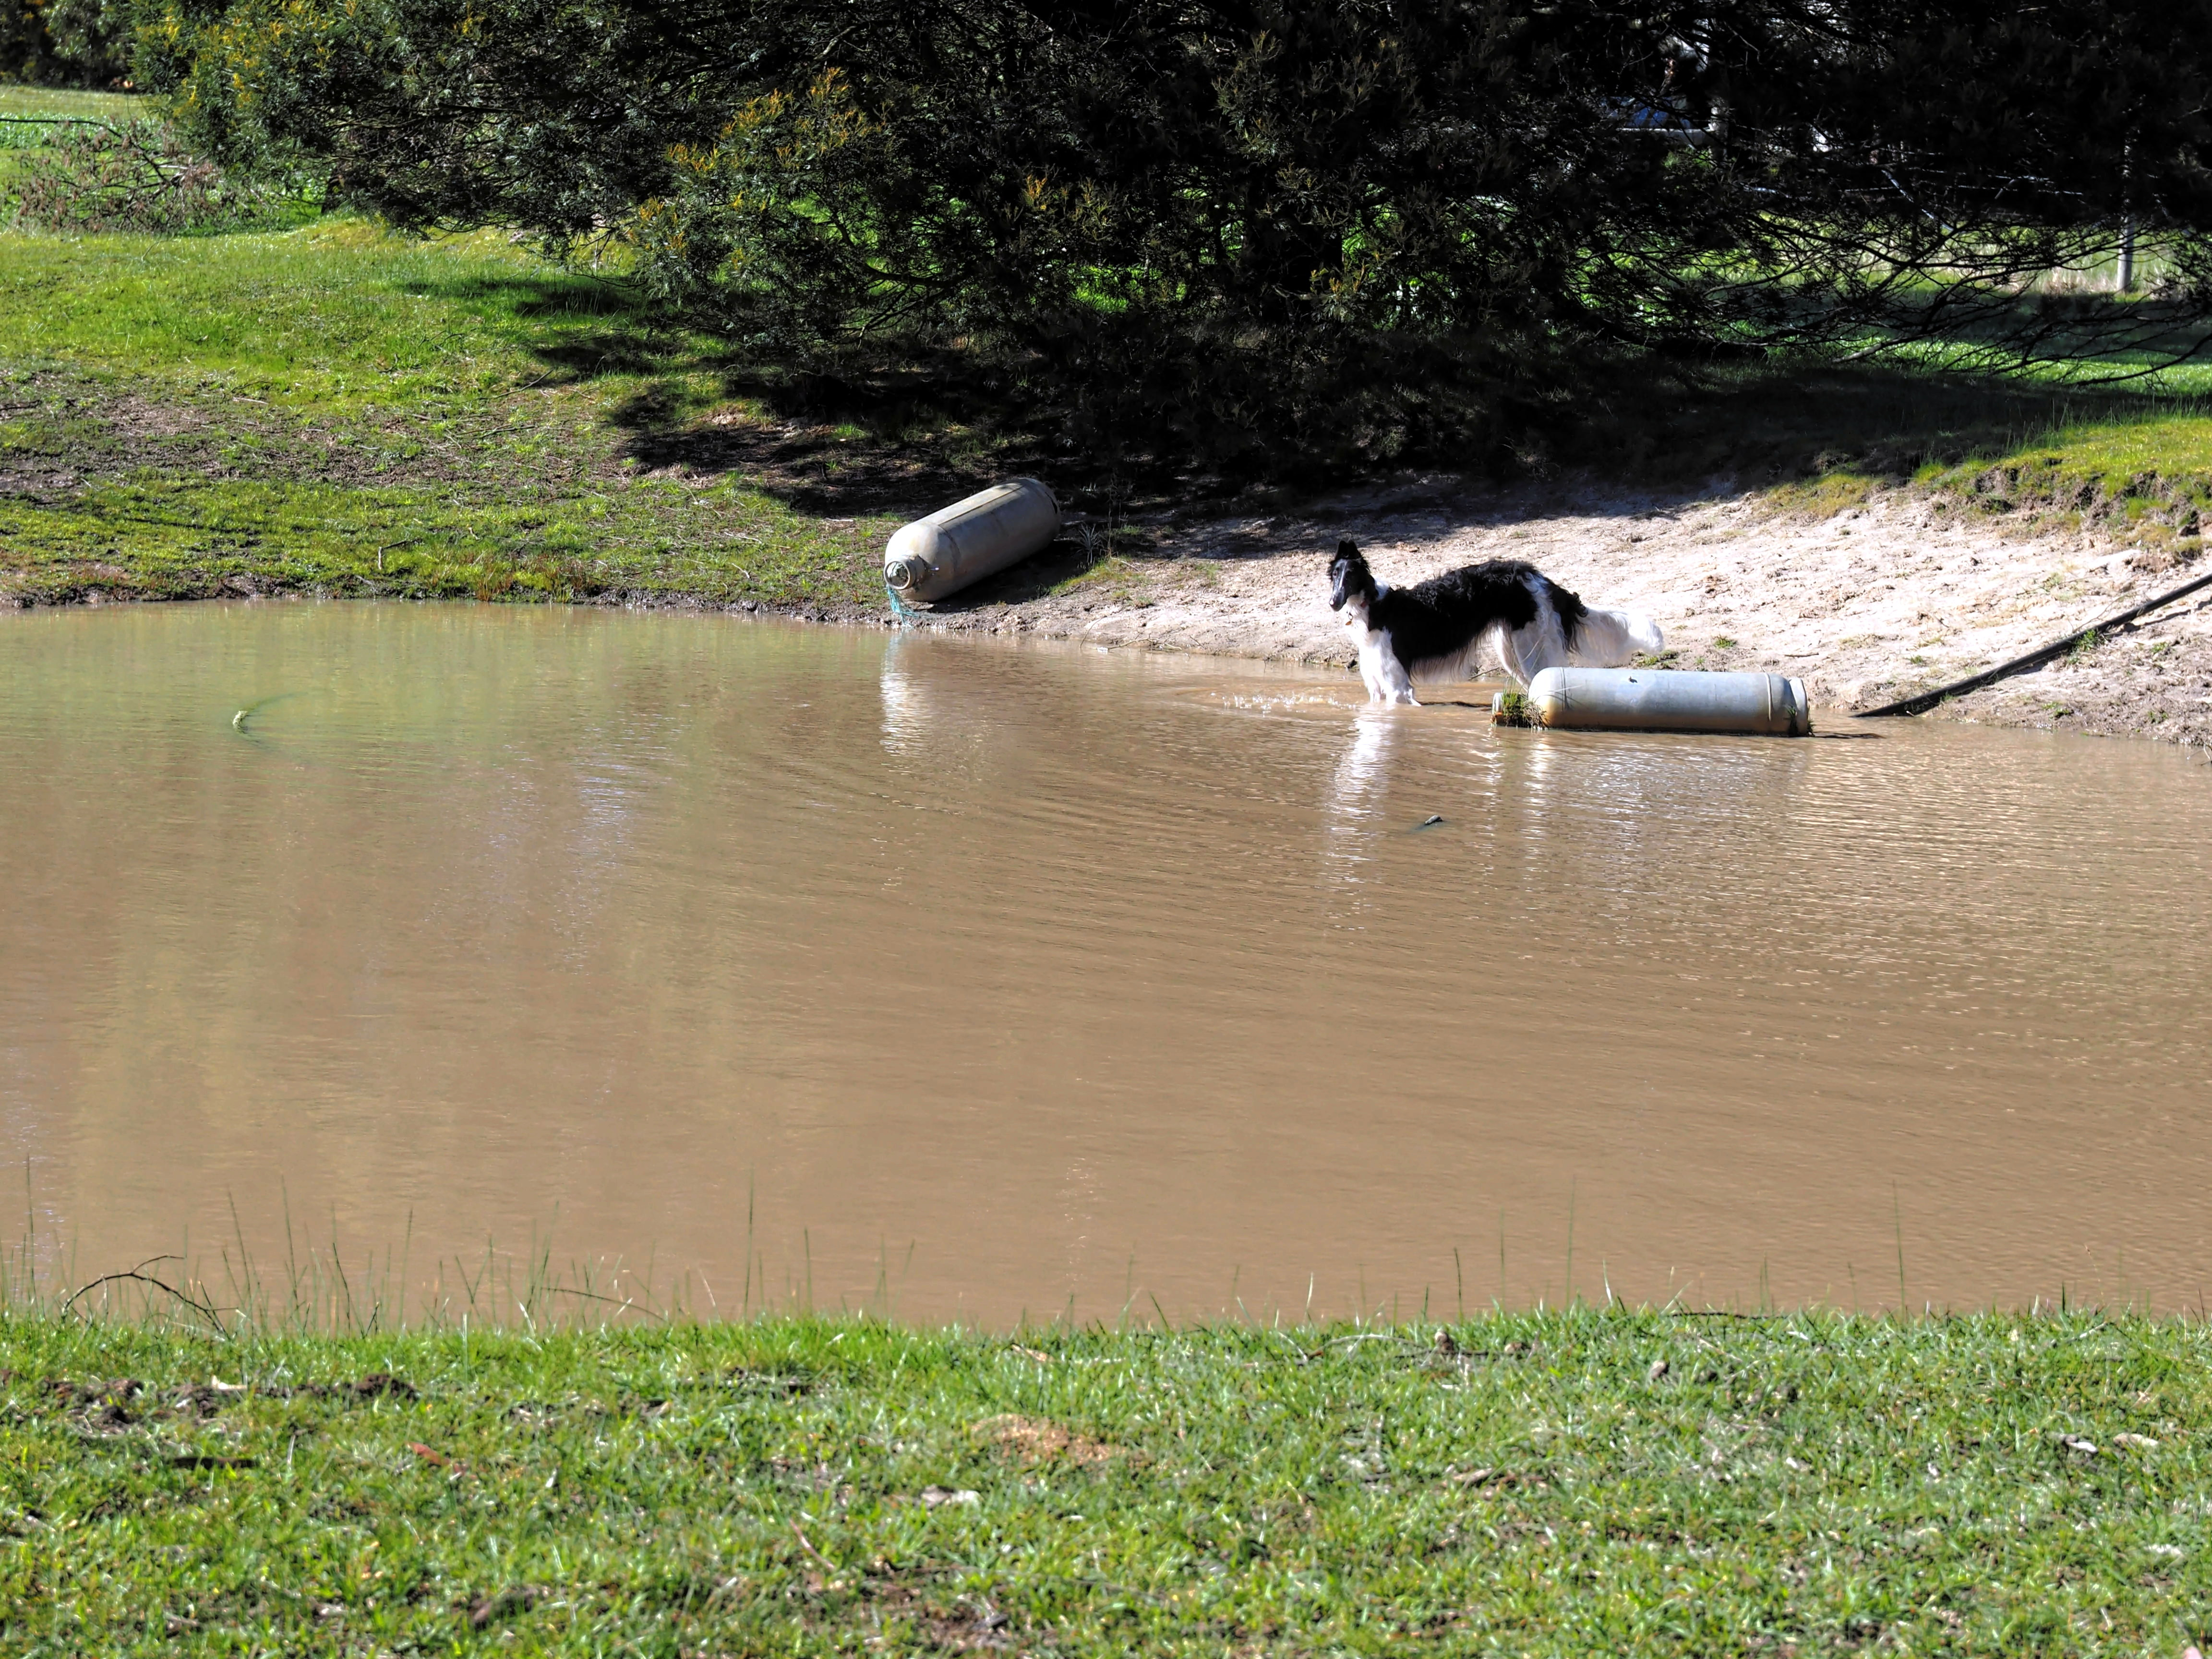 Dogs-in-pond-1.jpeg